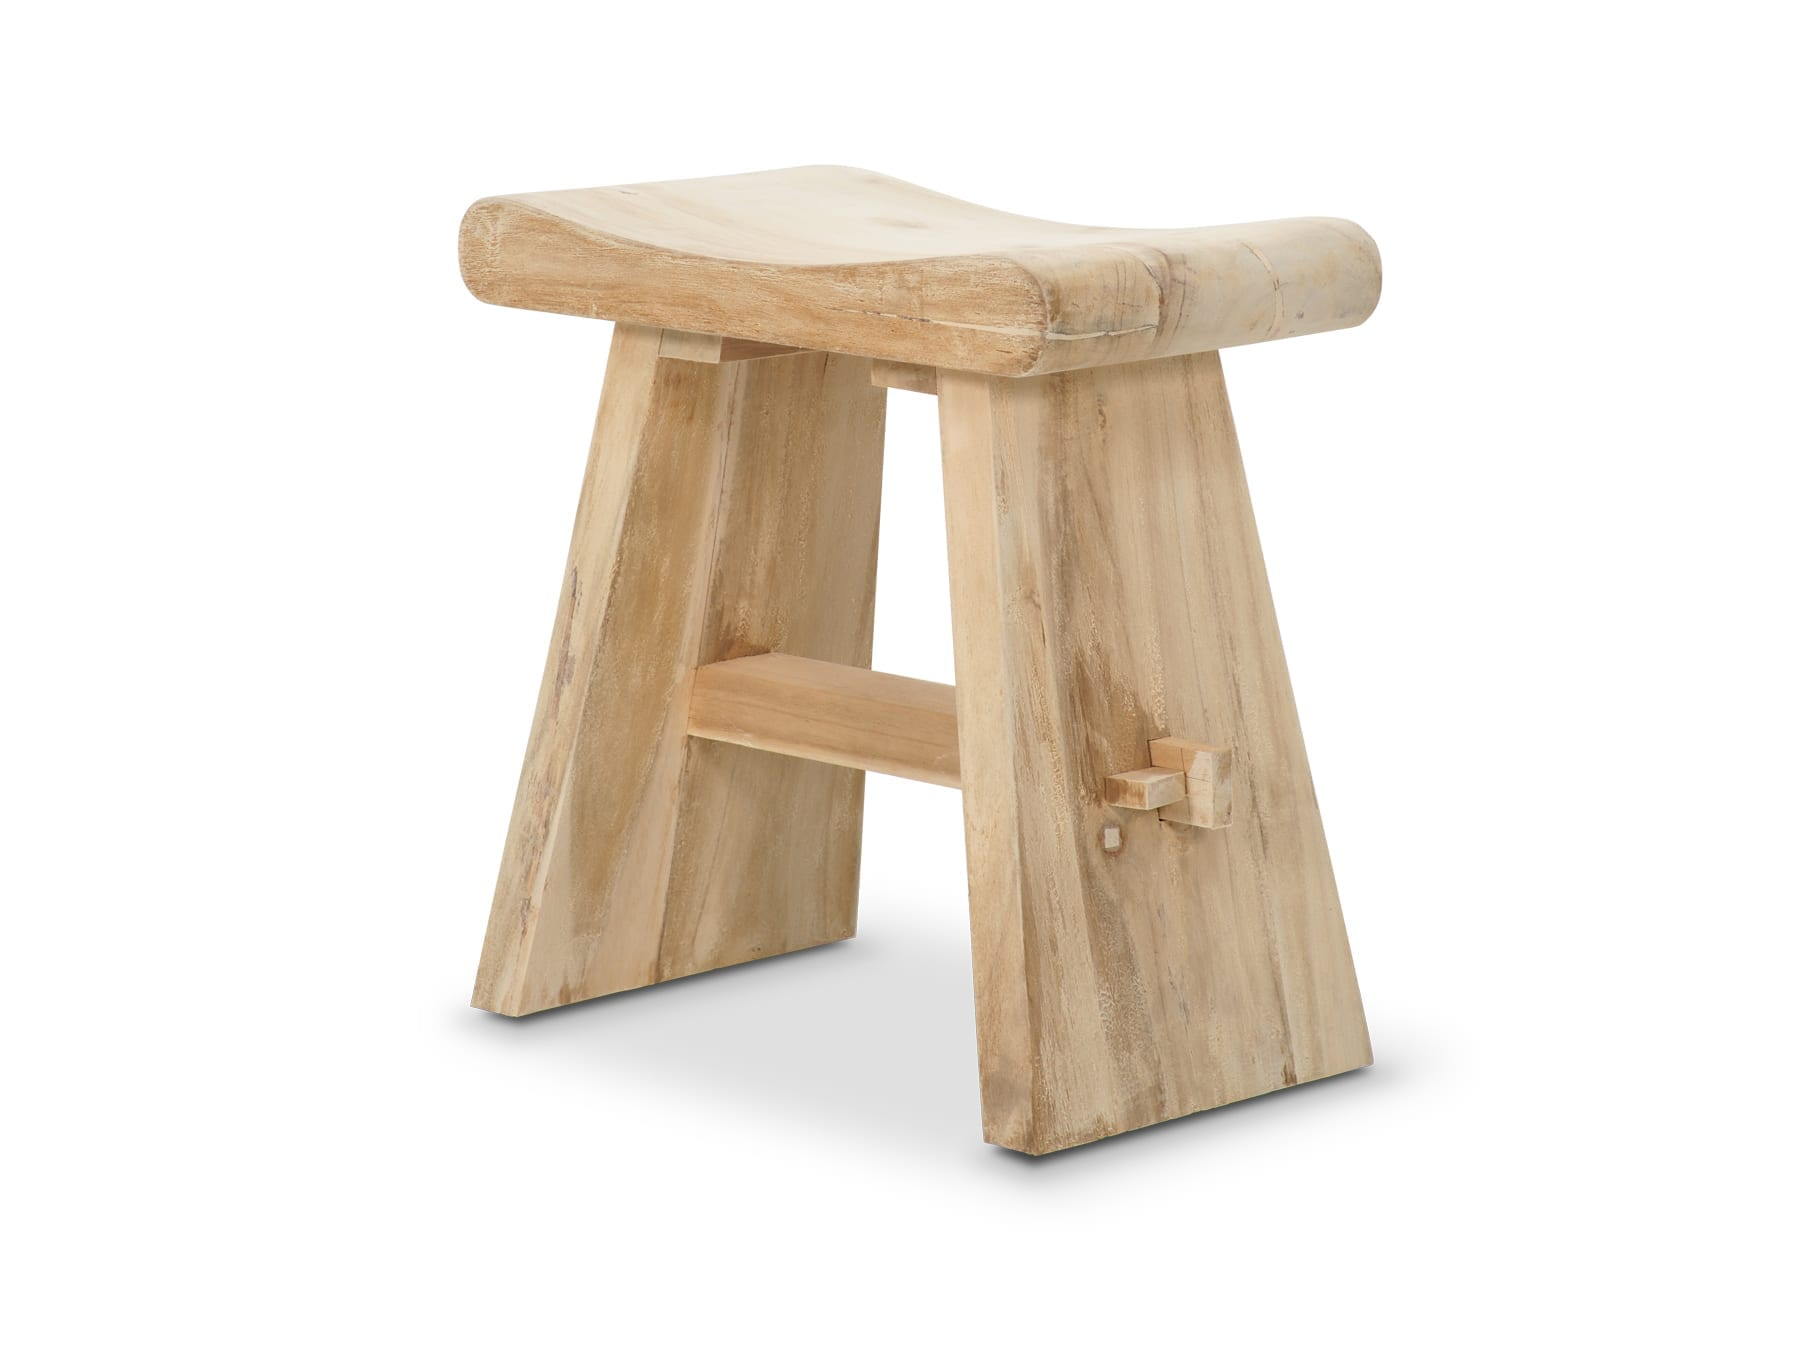 Wonderful image of Home › Furniture › Outdoor Furniture › Portico Diva Teak Stool with #7D5434 color and 1800x1350 pixels